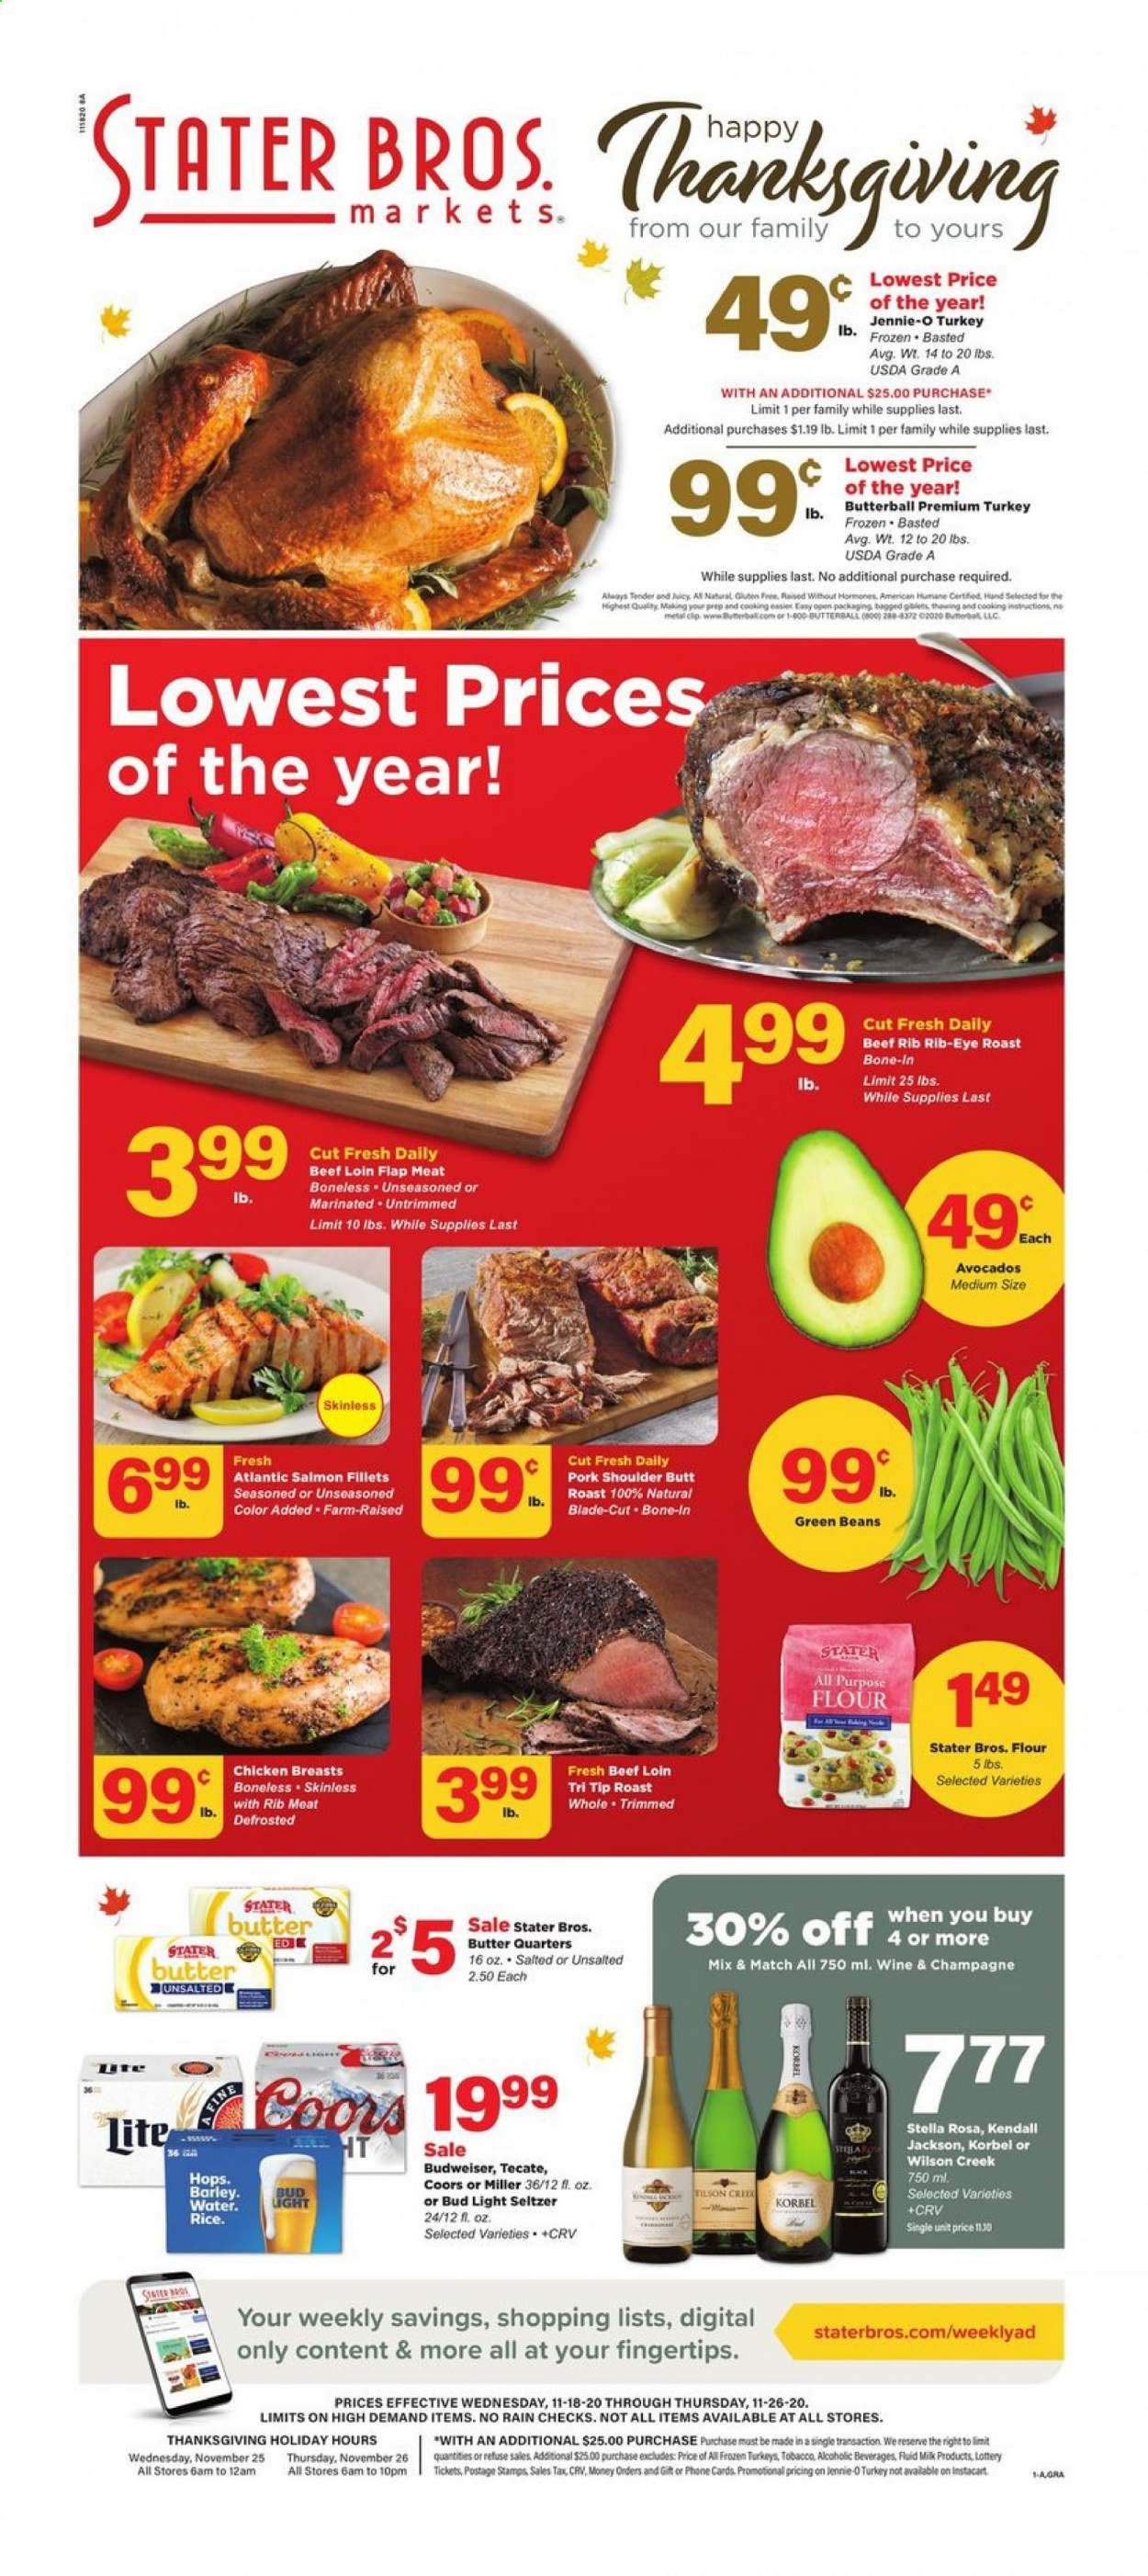 Stater Bros. Flyer - 11.18.2020 - 11.26.2020 - Sales products - all purpose flour, avocado, barley, beans, beef meat, Budweiser, Butterball, flour, frozen, green beans, rice, salmon, seltzer, turkey, Wilson, champagne, pork meat, pork shoulder, chicken, chicken breast, AVG, Bud Light, wine, Coors, Meat, phone. Page 1.